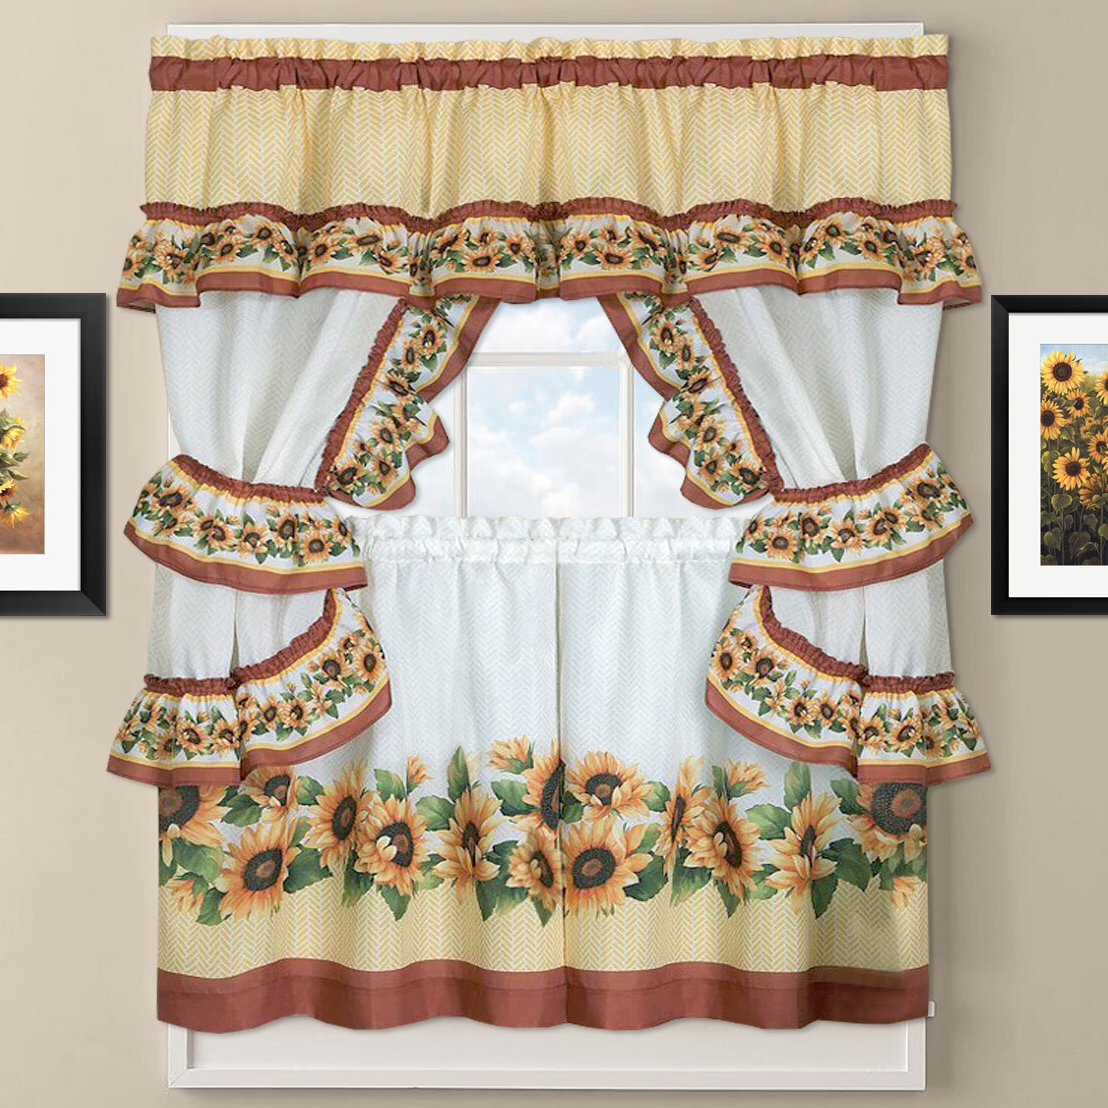 Cottage Kitchen Curtains – Skushi Regarding Most Recent Chateau Wines Cottage Kitchen Curtain Tier And Valance Sets (View 9 of 20)